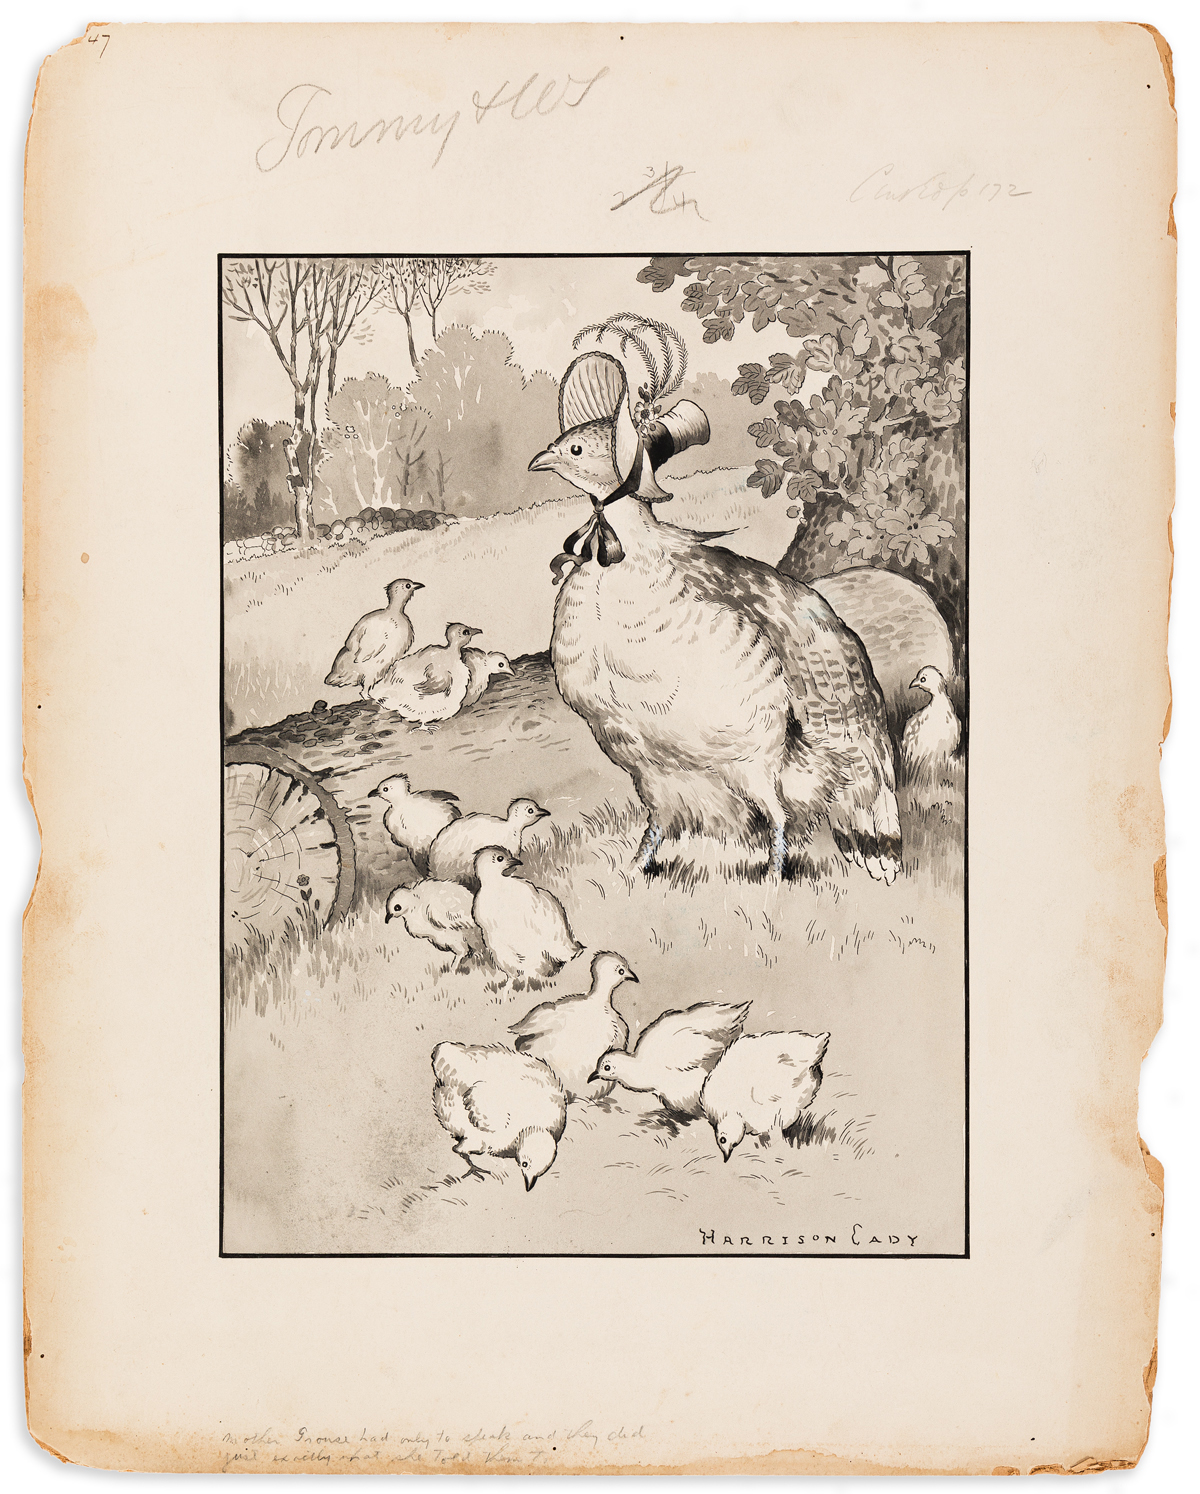 HARRISON CADY (1877-1970) Mother Grouse Knew there were dangers on Every side. [CHILDRENS]